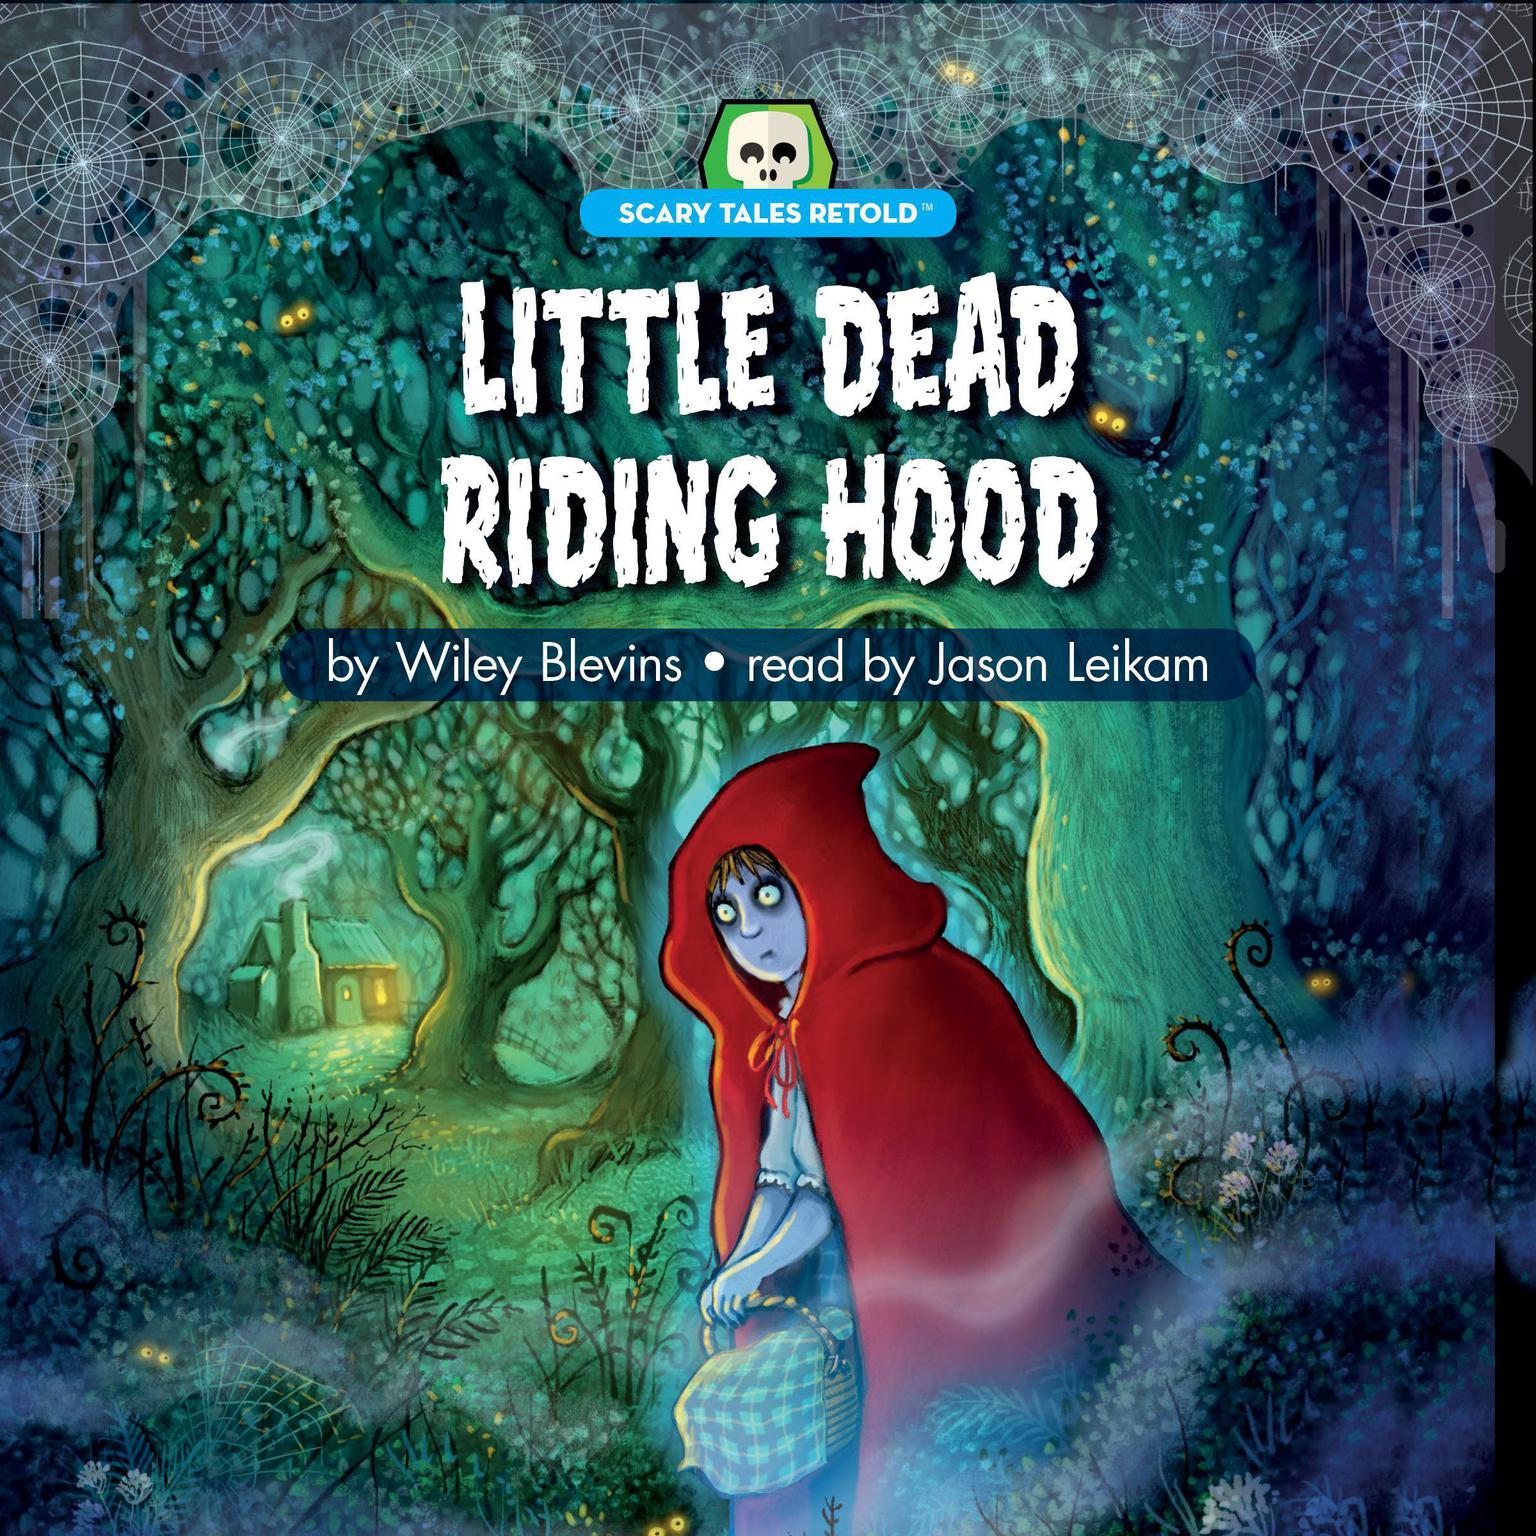 Little Dead Riding Hood: Scary Tales Retold Audiobook, by Wiley Blevins